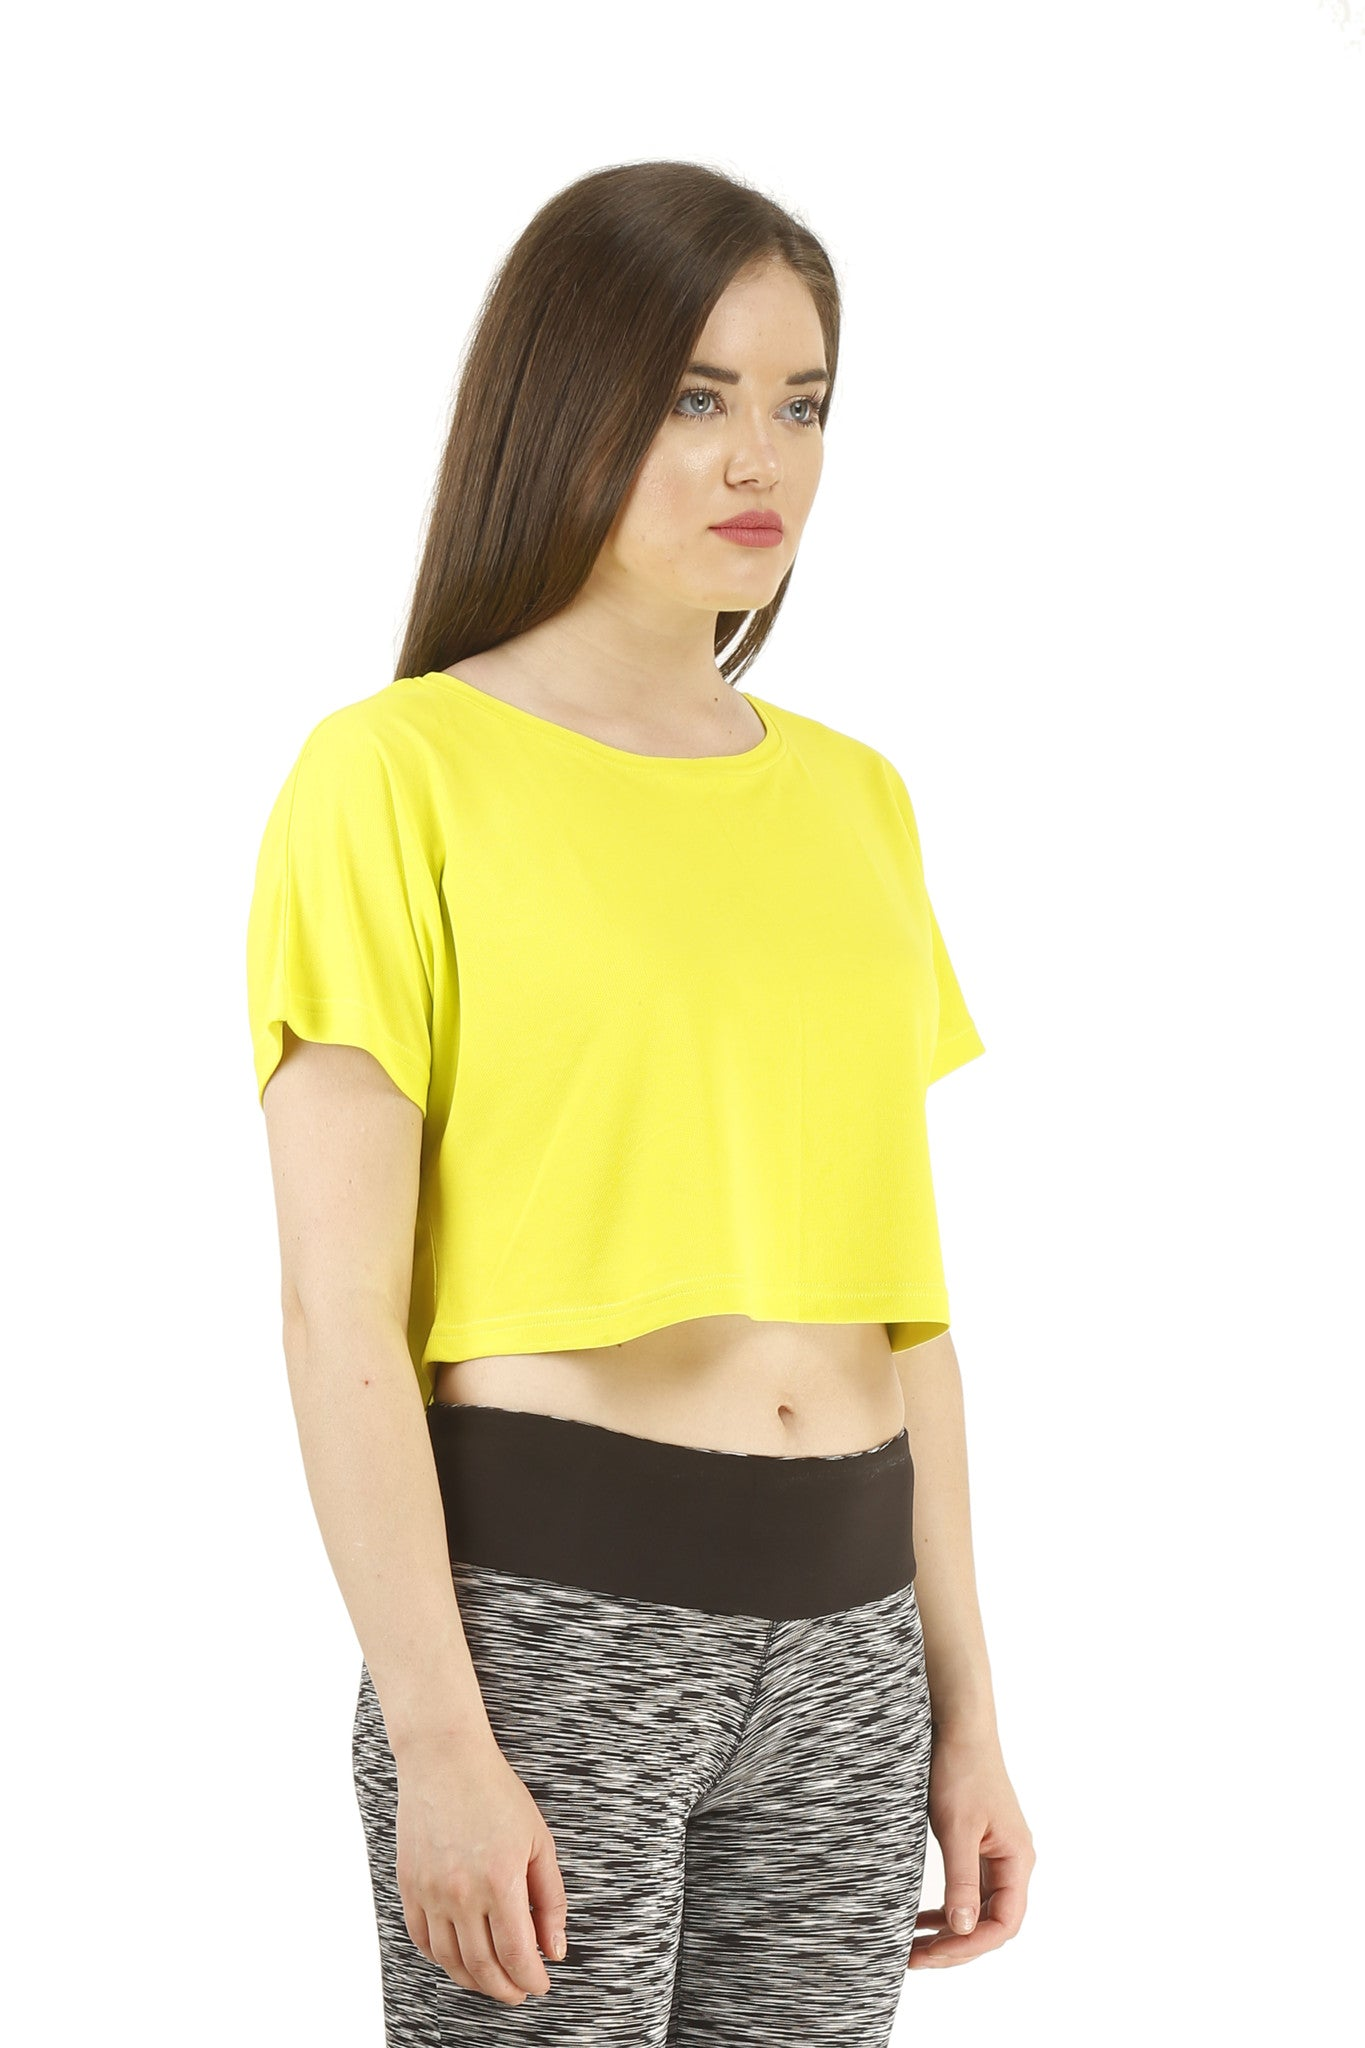 The Flowy Crop Top